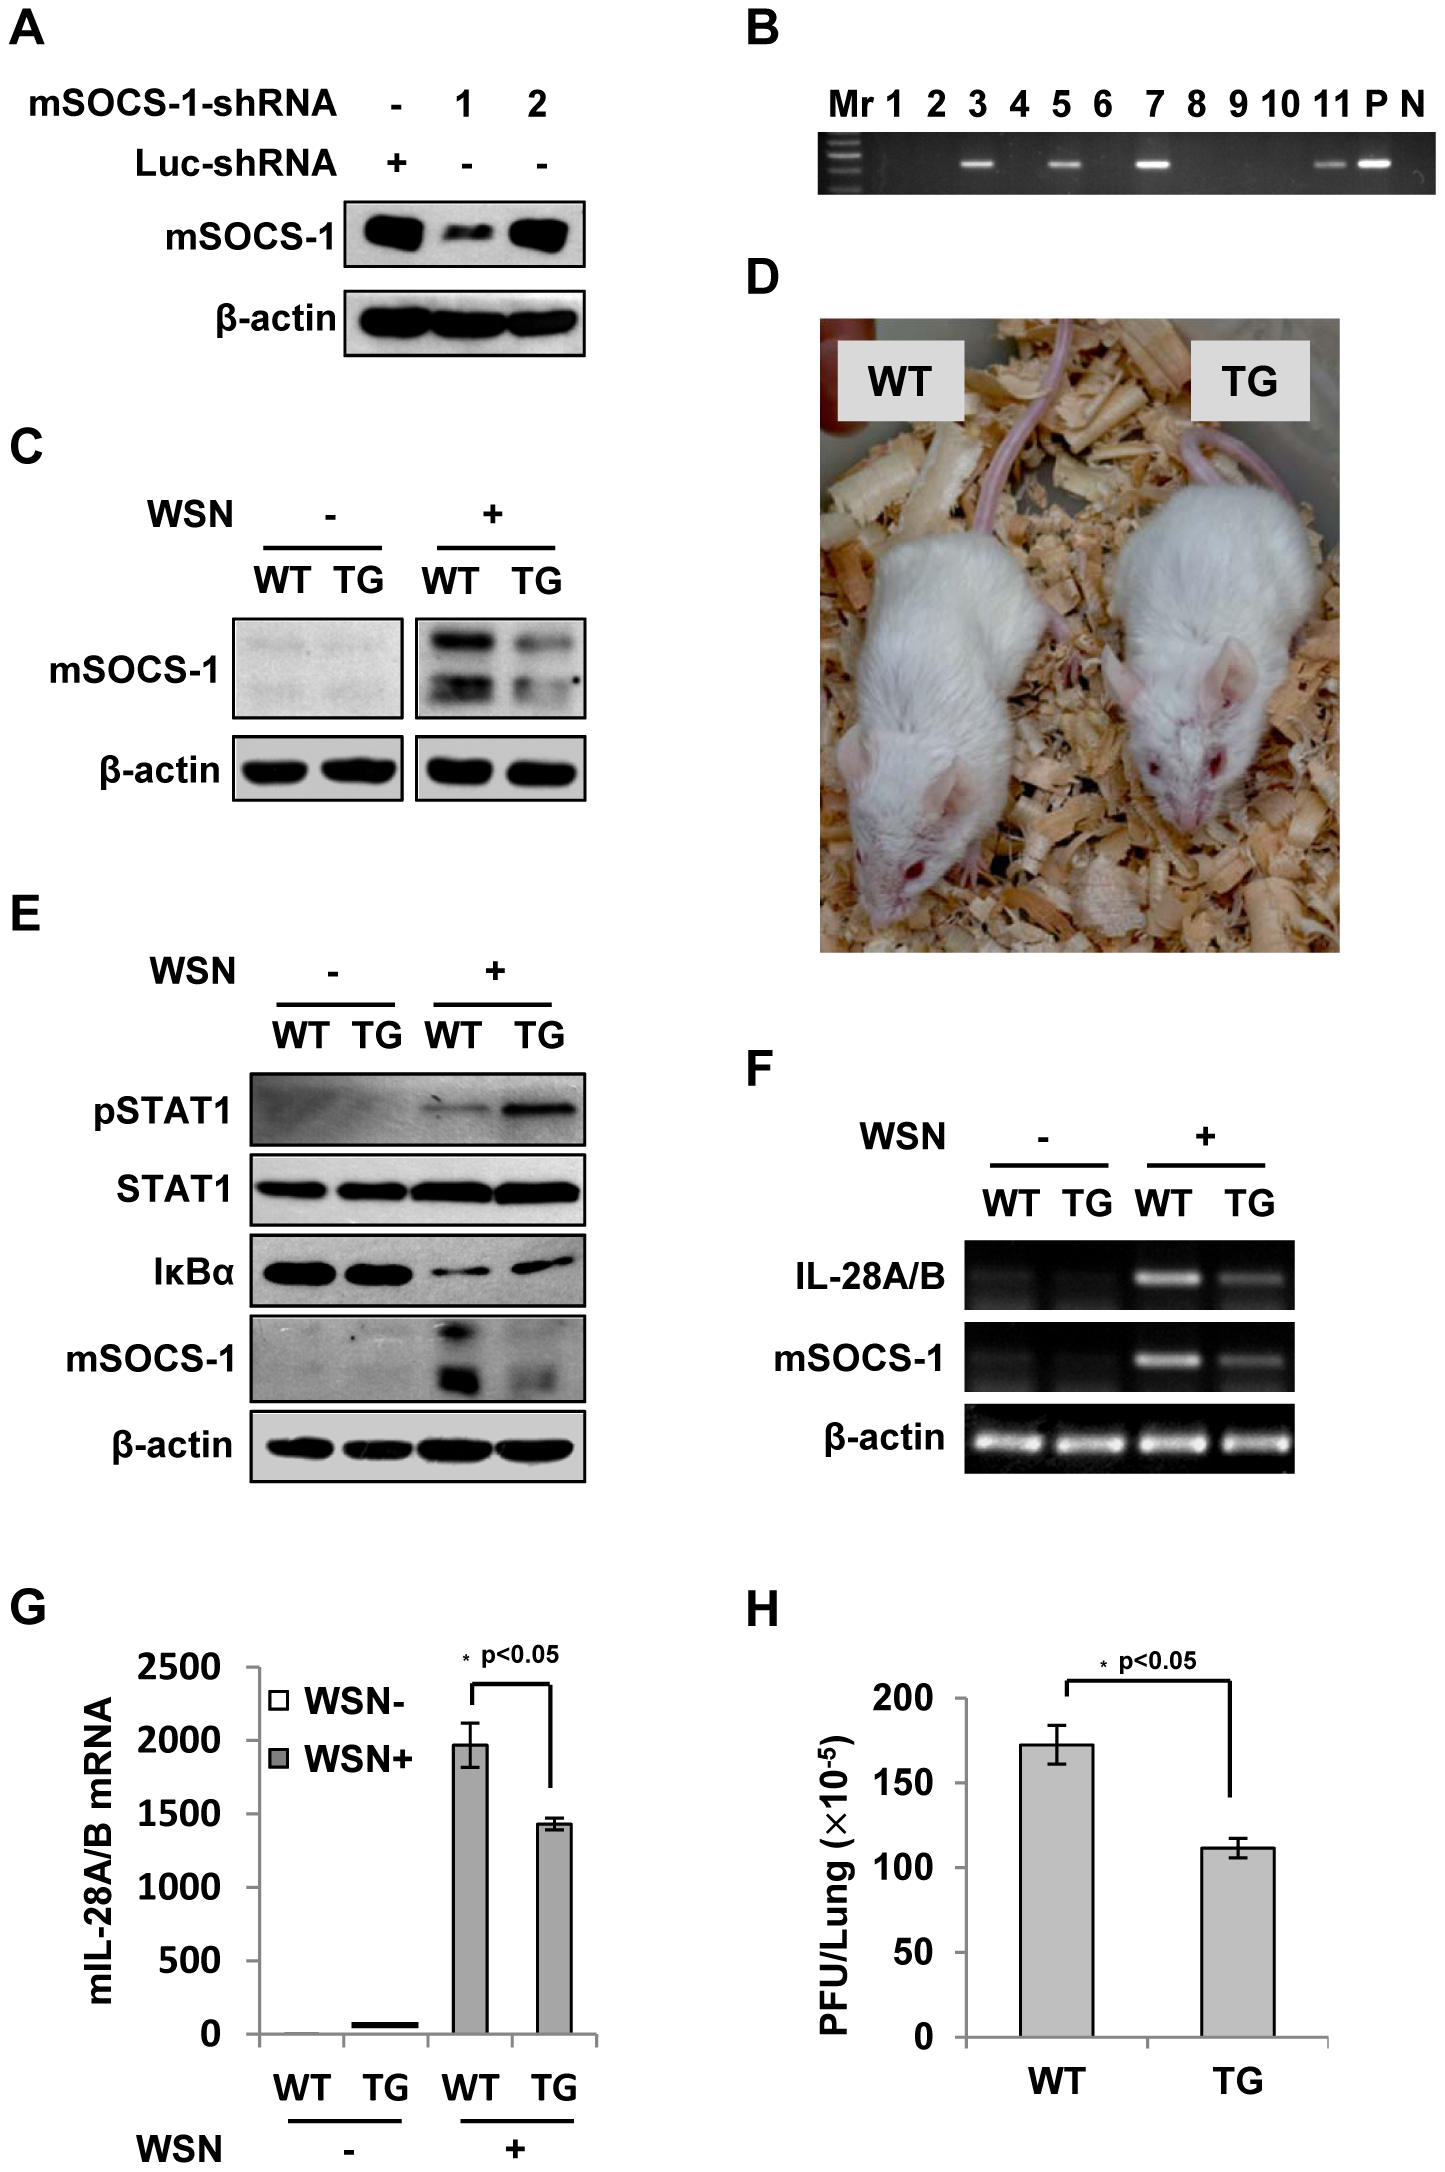 Silencing SOCS-1 causes a significant reduction of IFN-λ expression in transgenic mice during IAV infection.